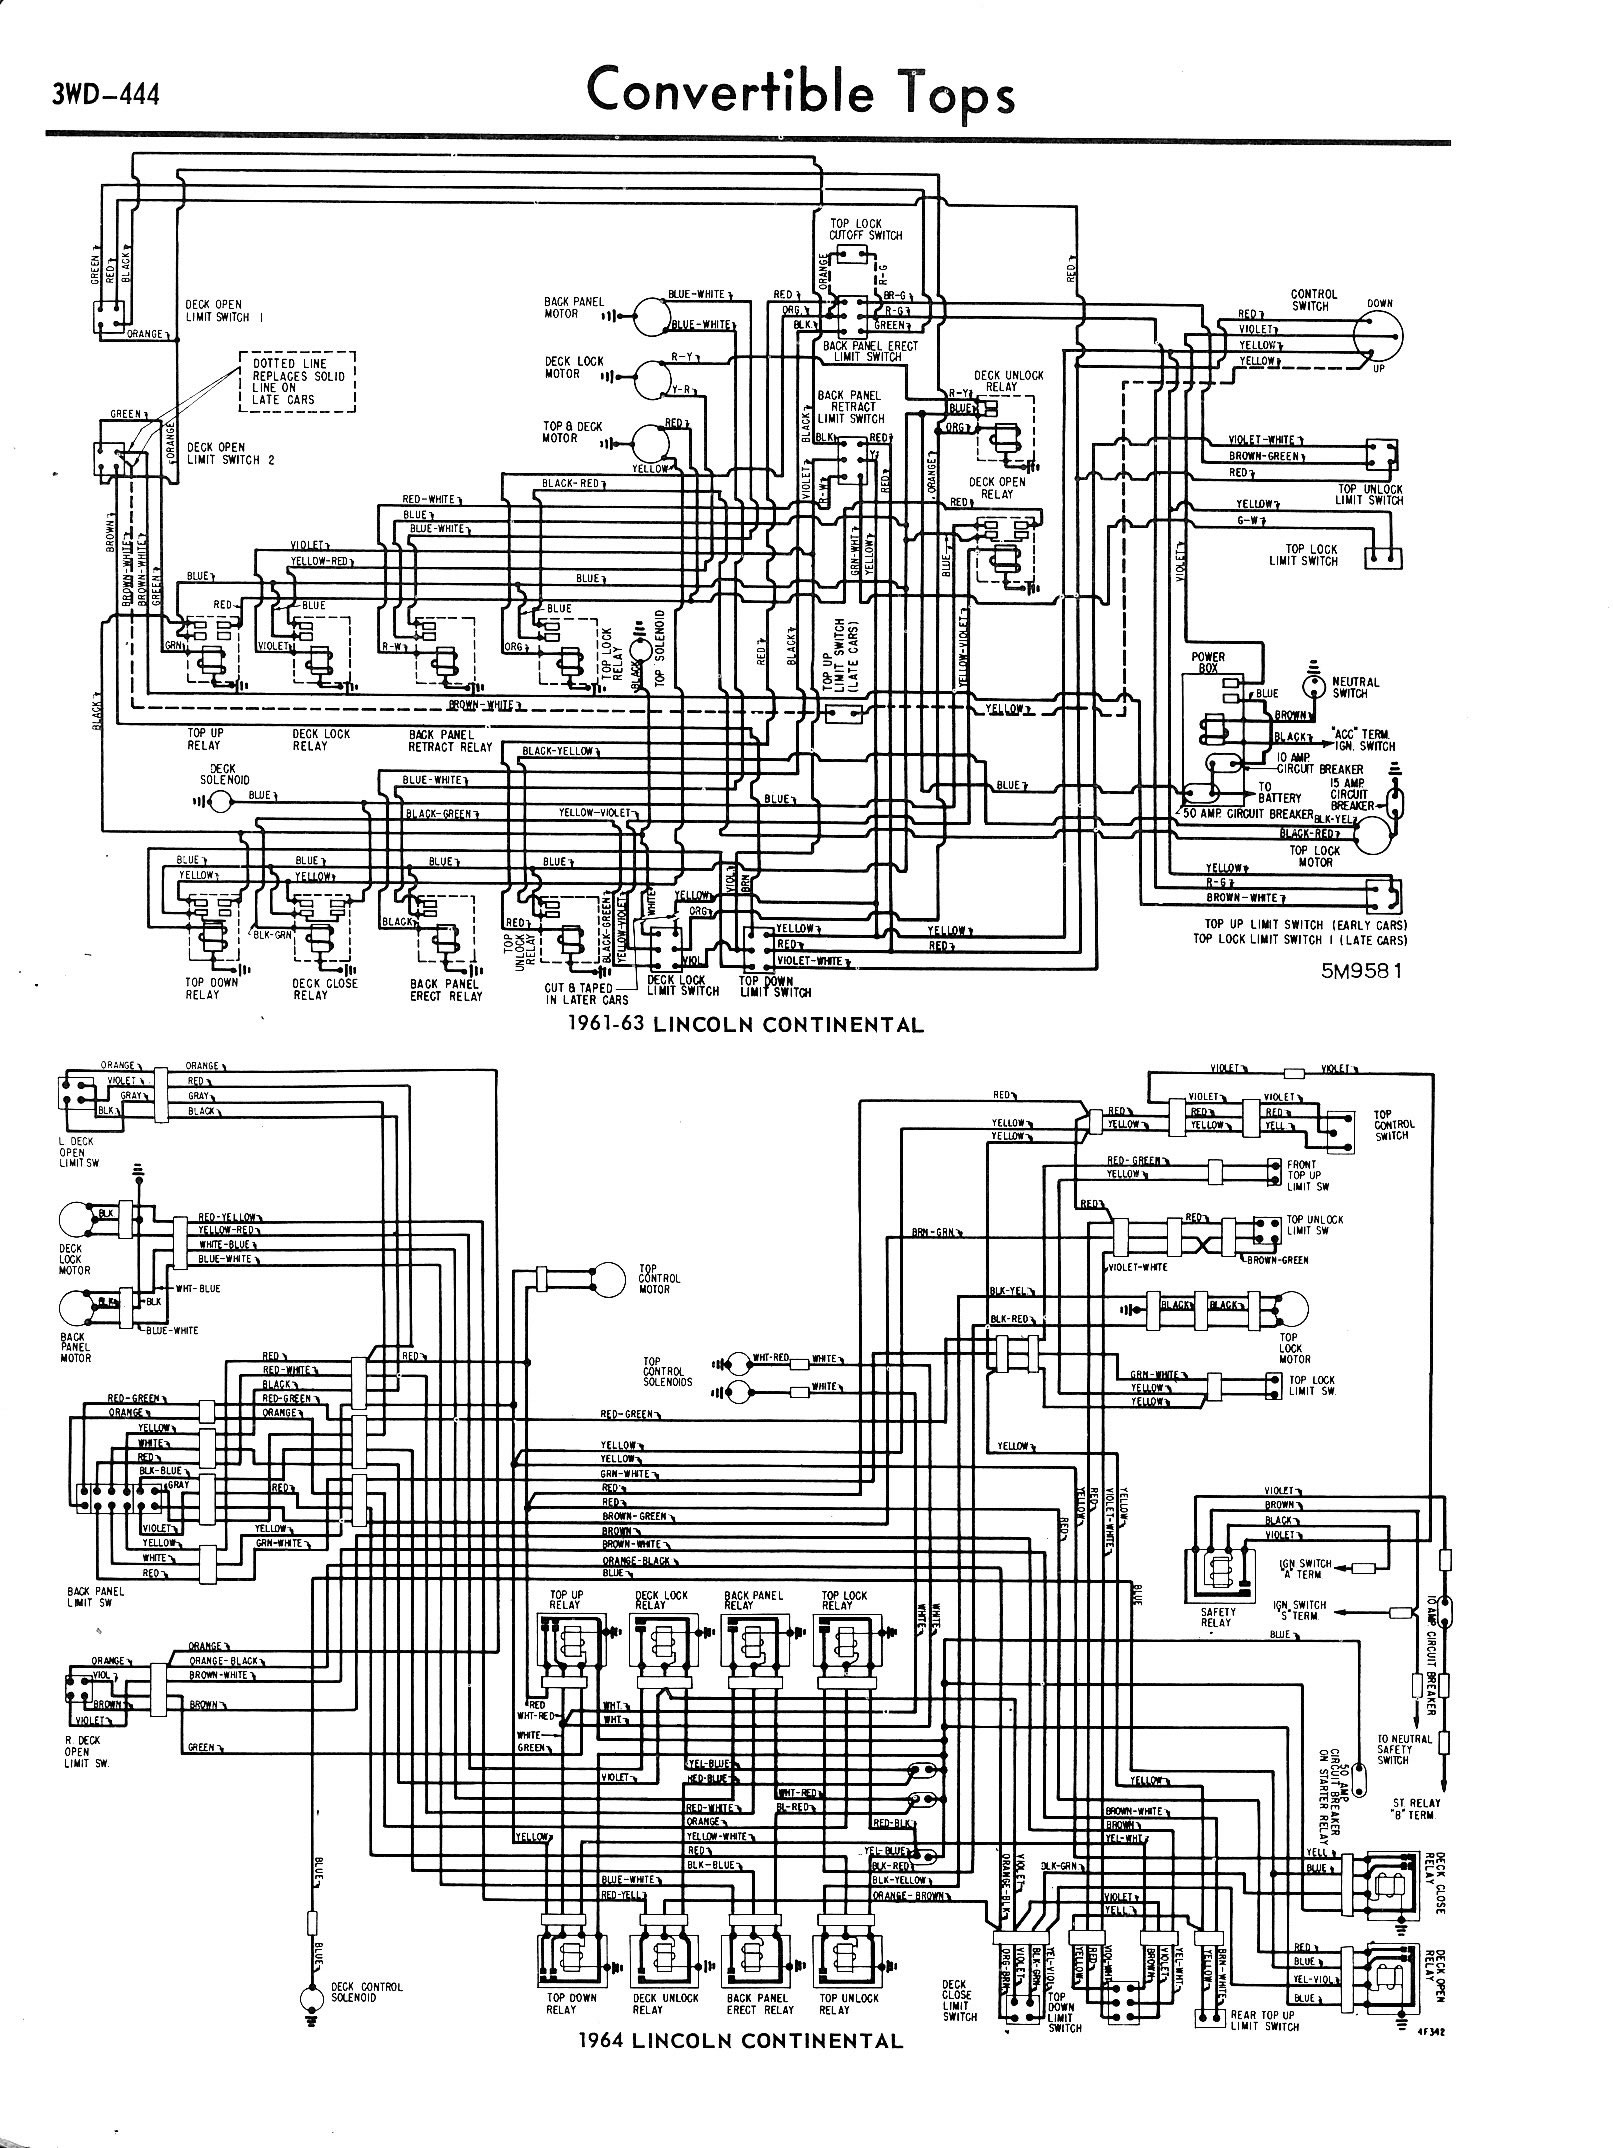 Ford Diagrams Chevy Alternator Wiring Diagram Ez Go Ignition Switch 61 64 Lincoln Continental Figure A